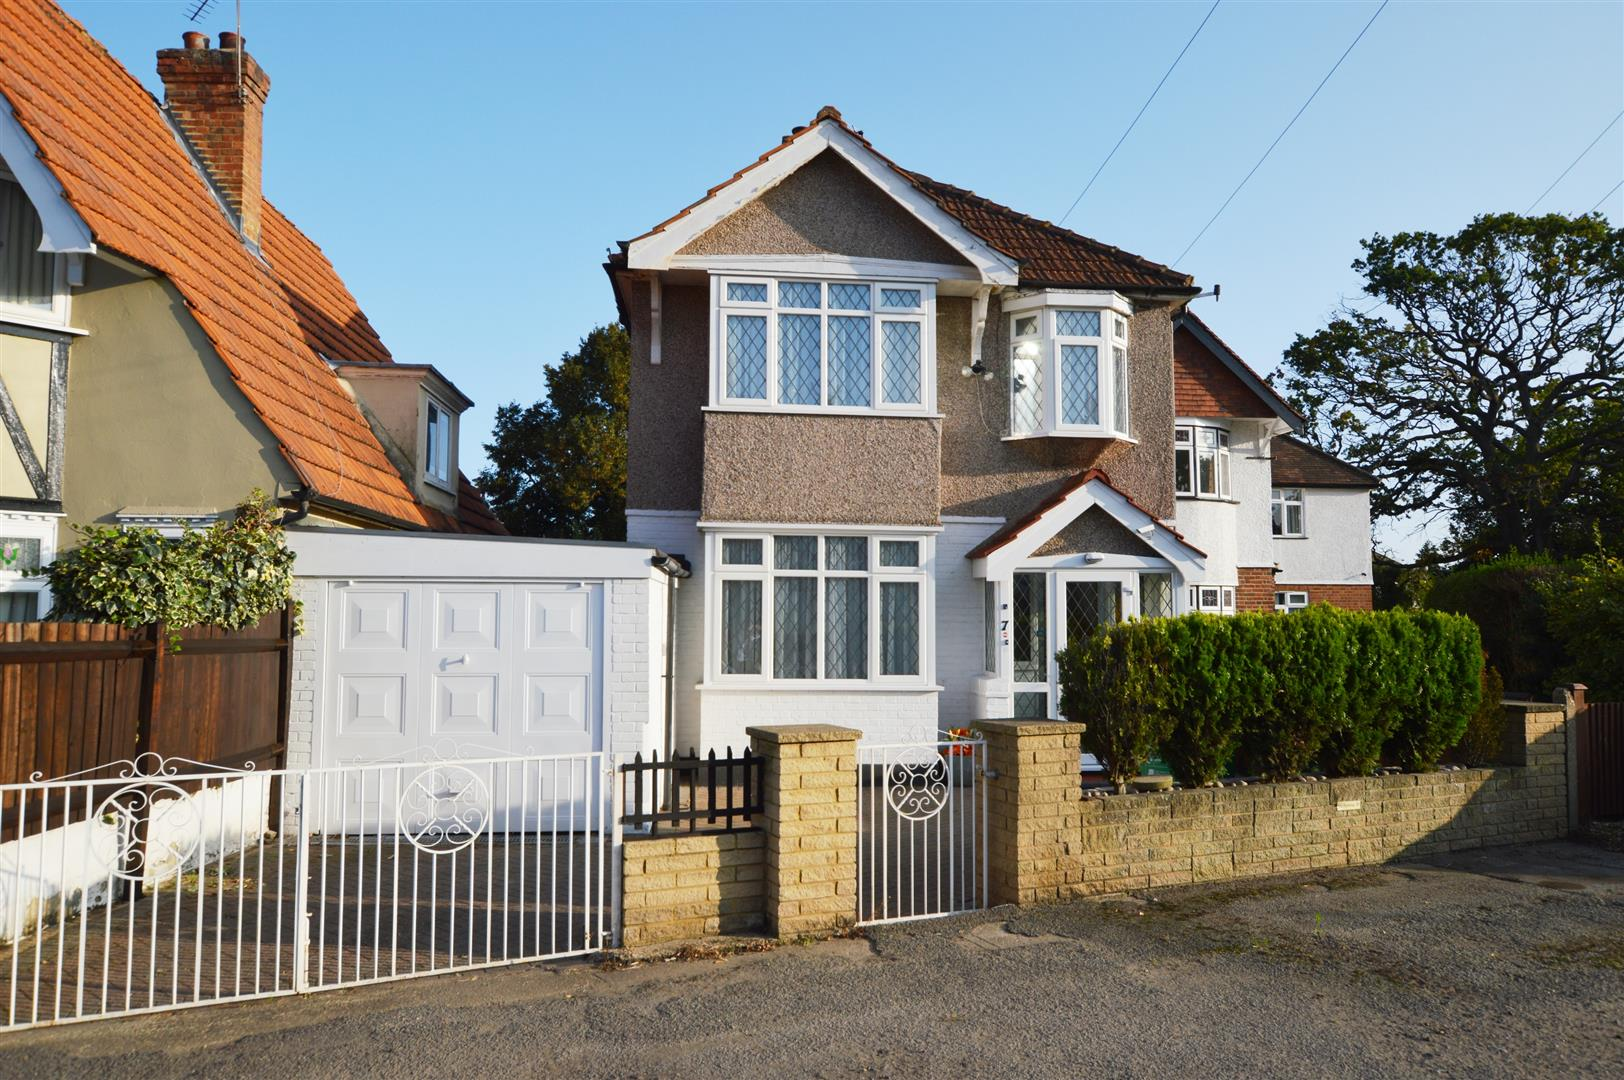 Keswick Road, Whitton, Twickenham TW2